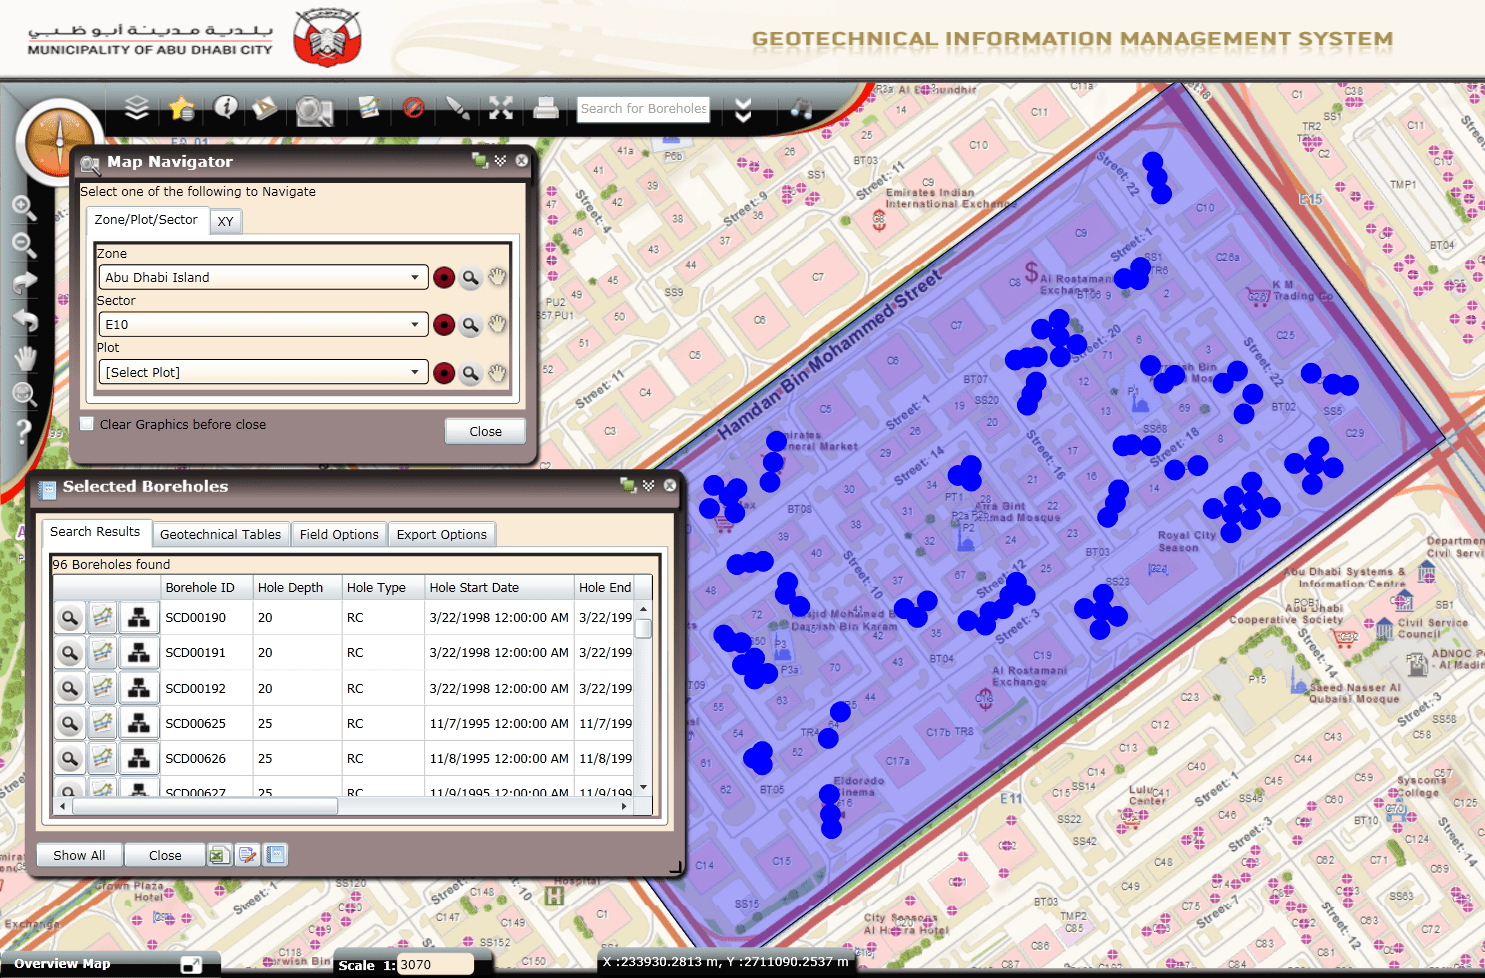 Users can query boreholes based on zones and spatial locations.